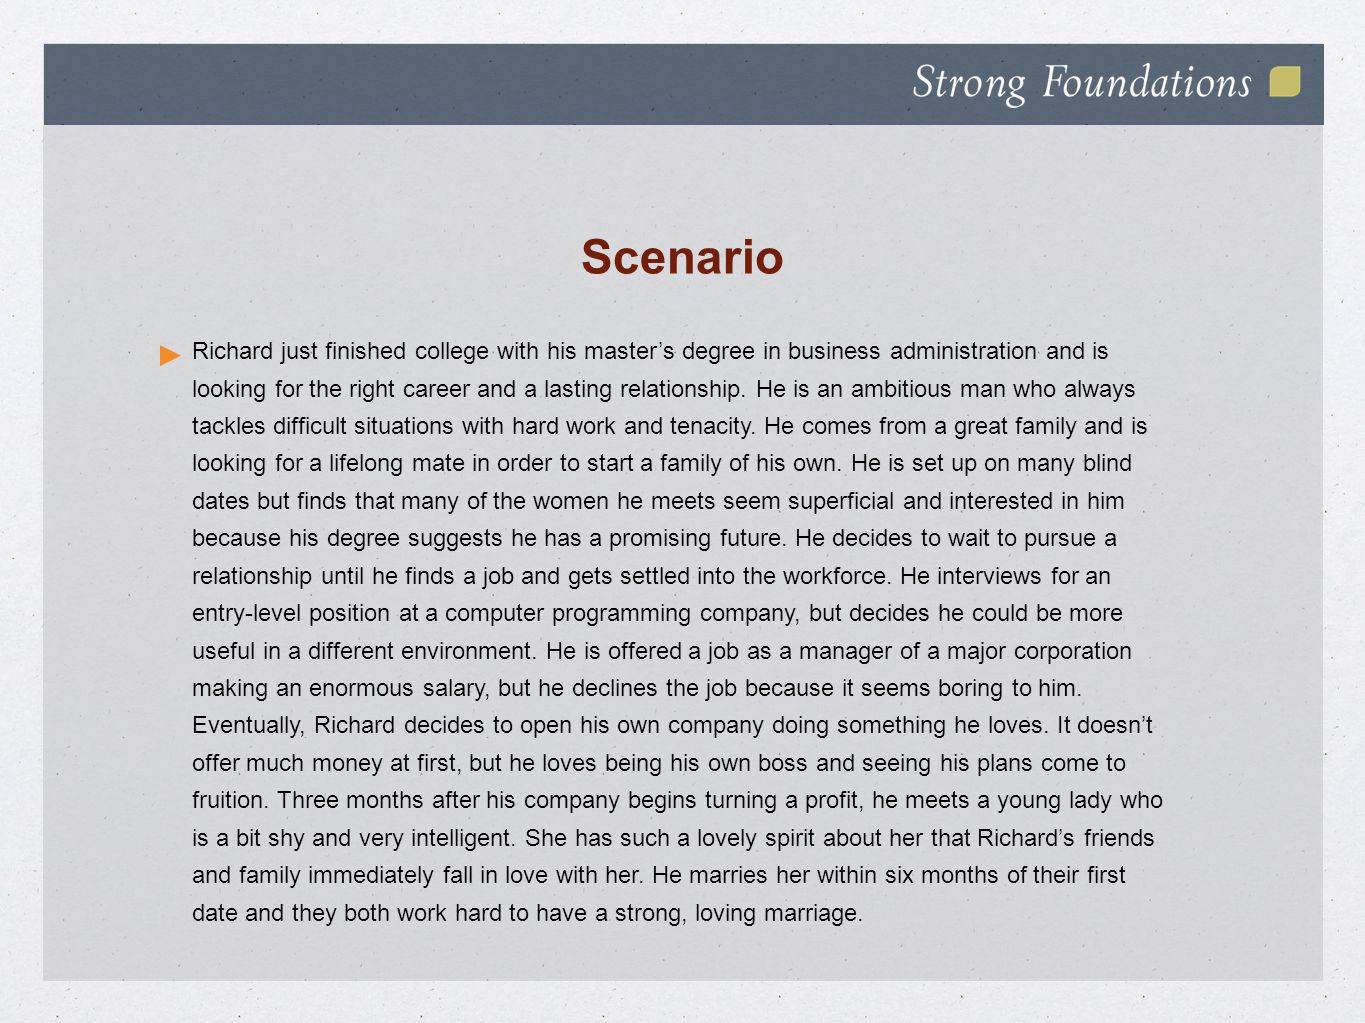 Scenario Richard just finished college with his master's degree in business administration and is looking for the right career and a lasting relations